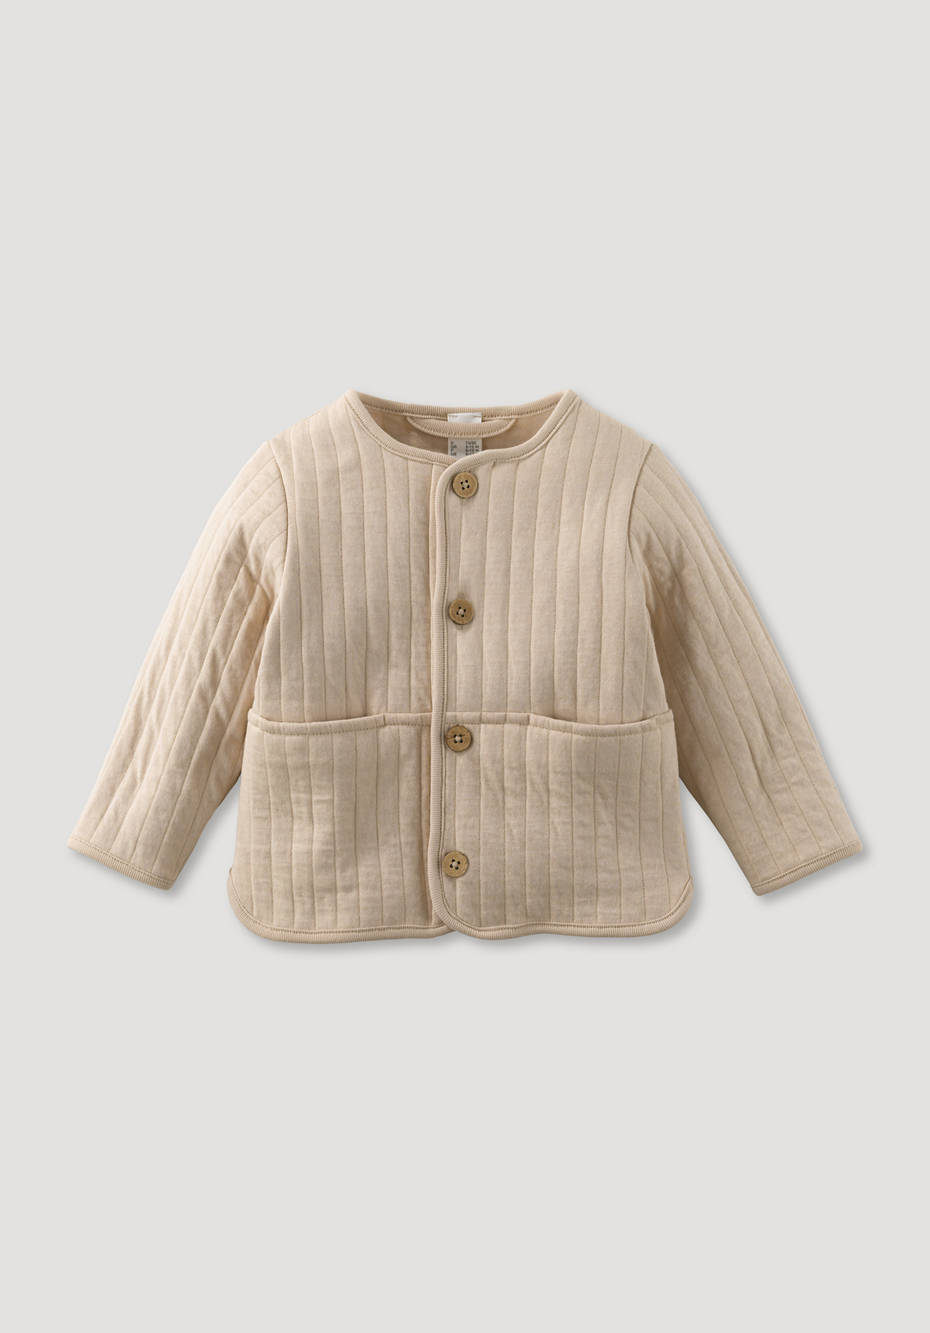 Jacket with quilted look, plant-dyed from pure organic cotton